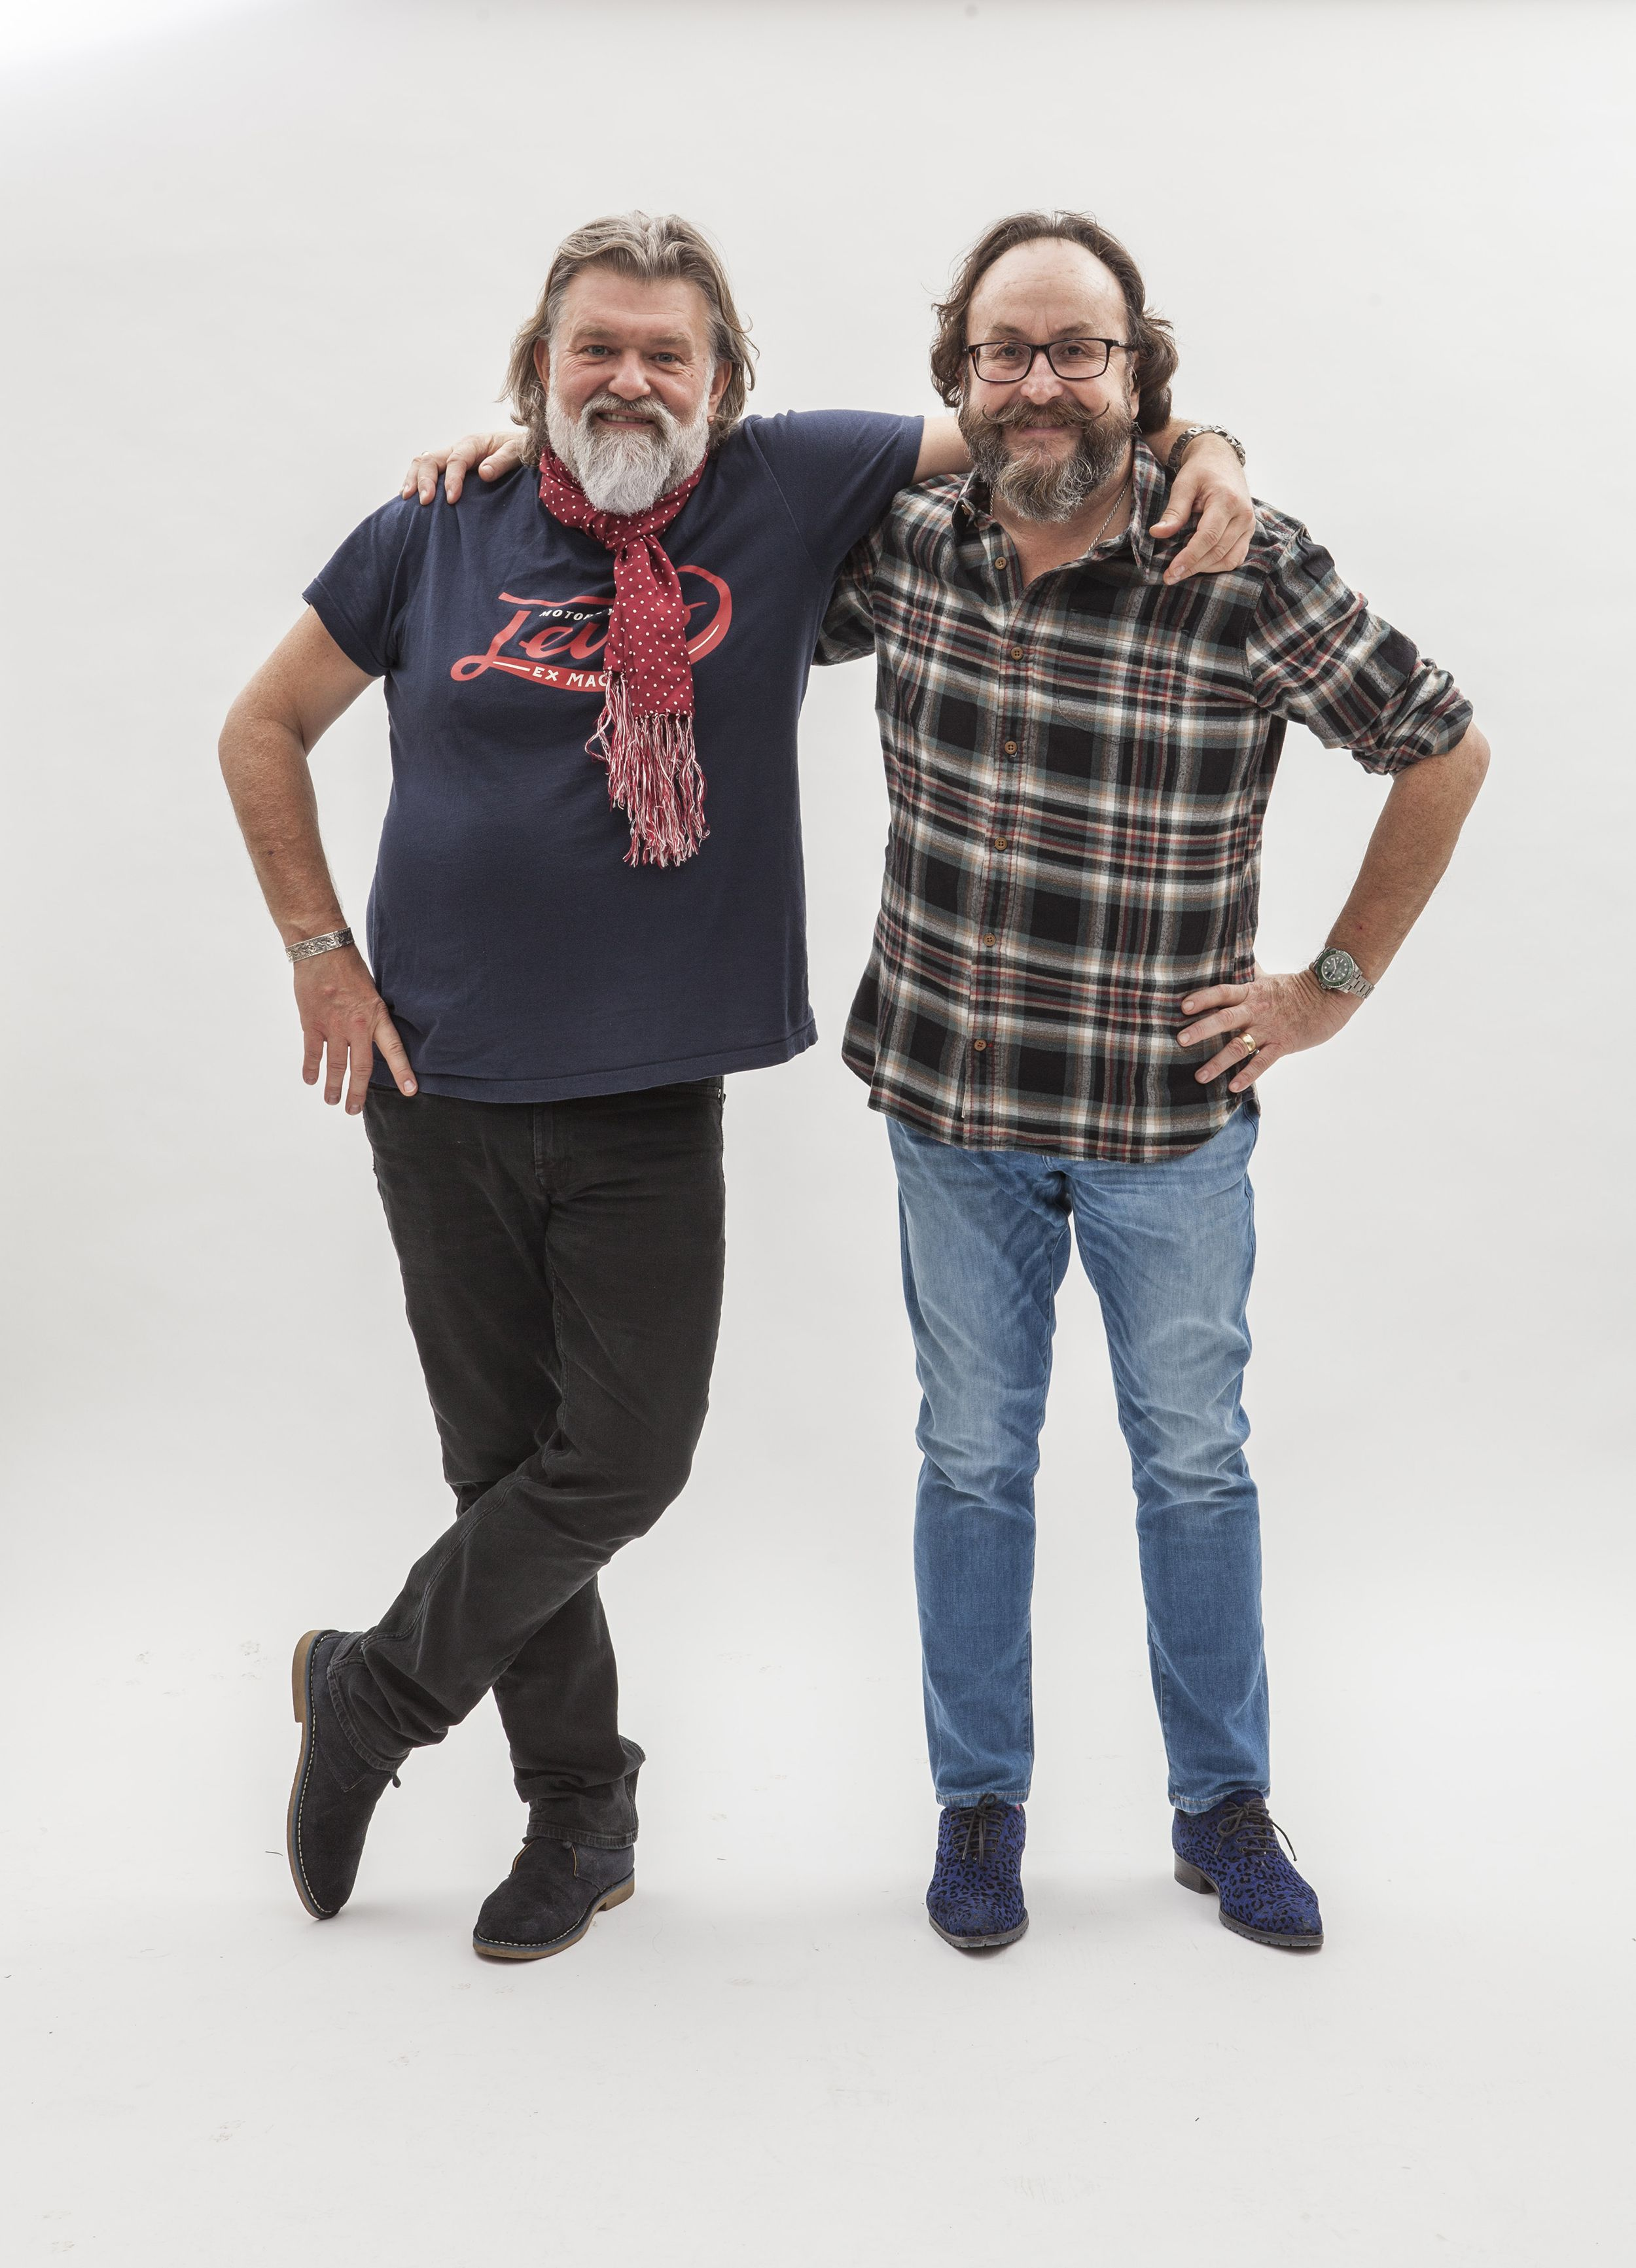 Hairy Bikers' Dave Myers on his favourite foodie holiday locations